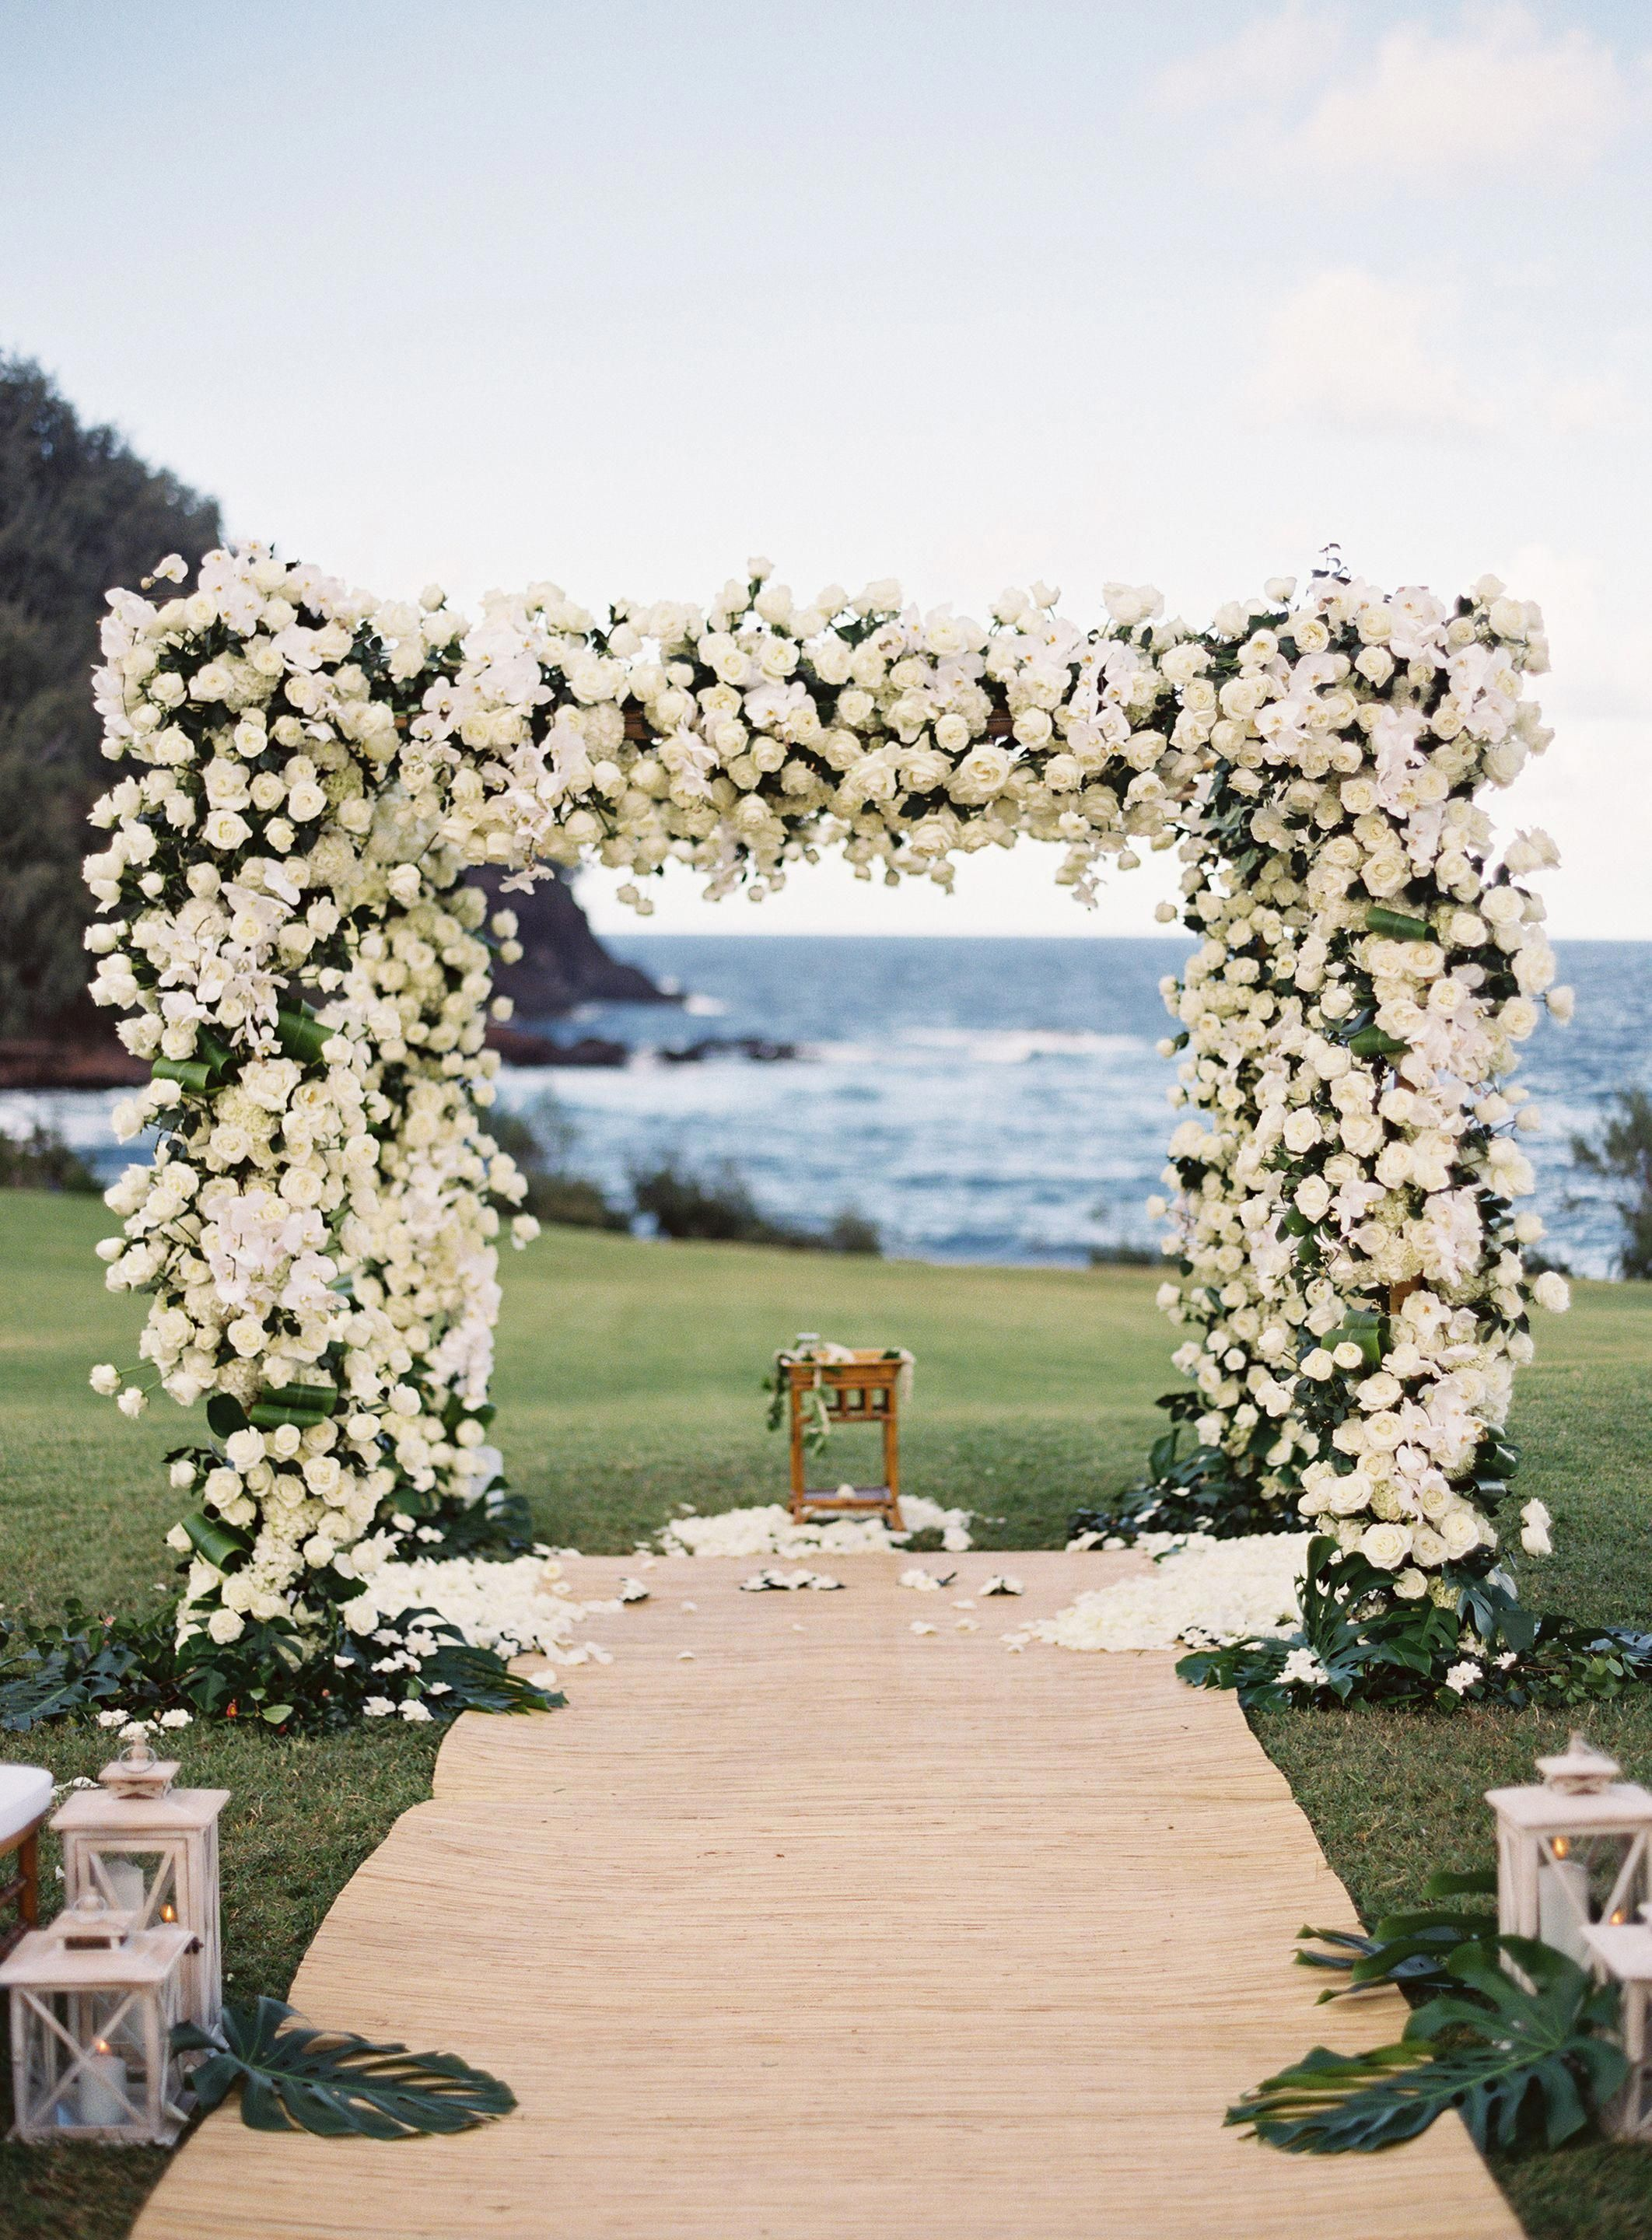 Omg Square Arch Looks Like The Future S On The Other Side Florals Floraldesign Weddingideas Wedding Wedding Venues Hawaii Outdoor Wedding Wedding Arch